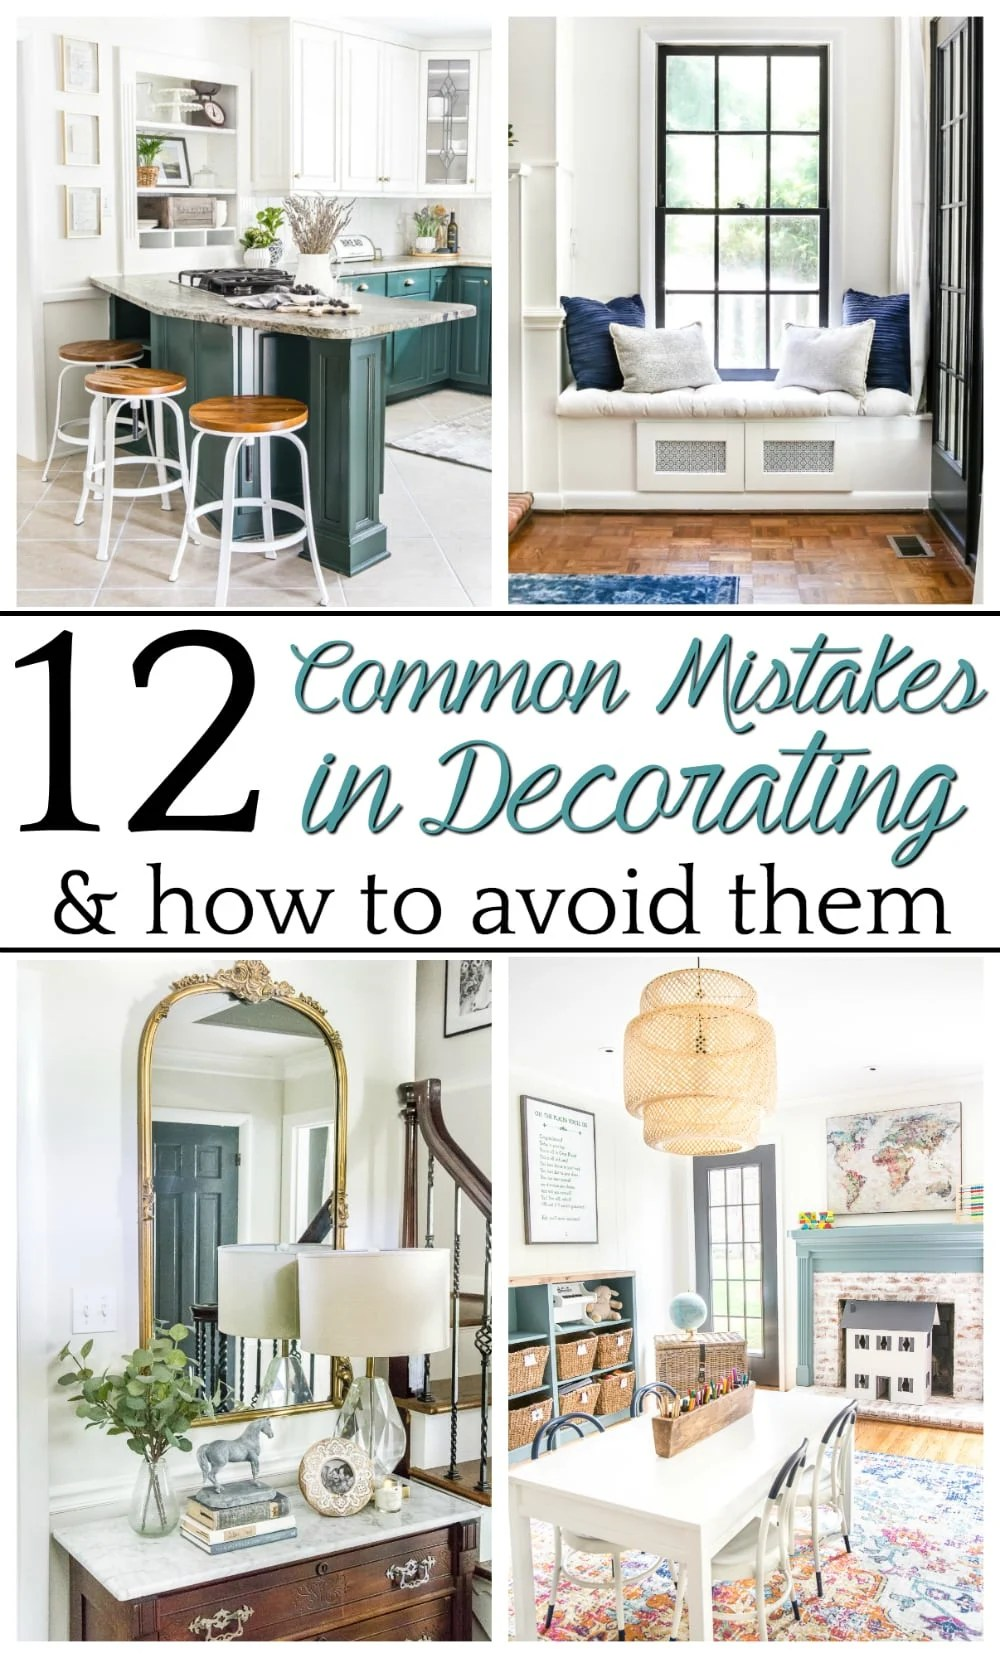 Common Decorating Mistakes And How To Avoid Them - Bless